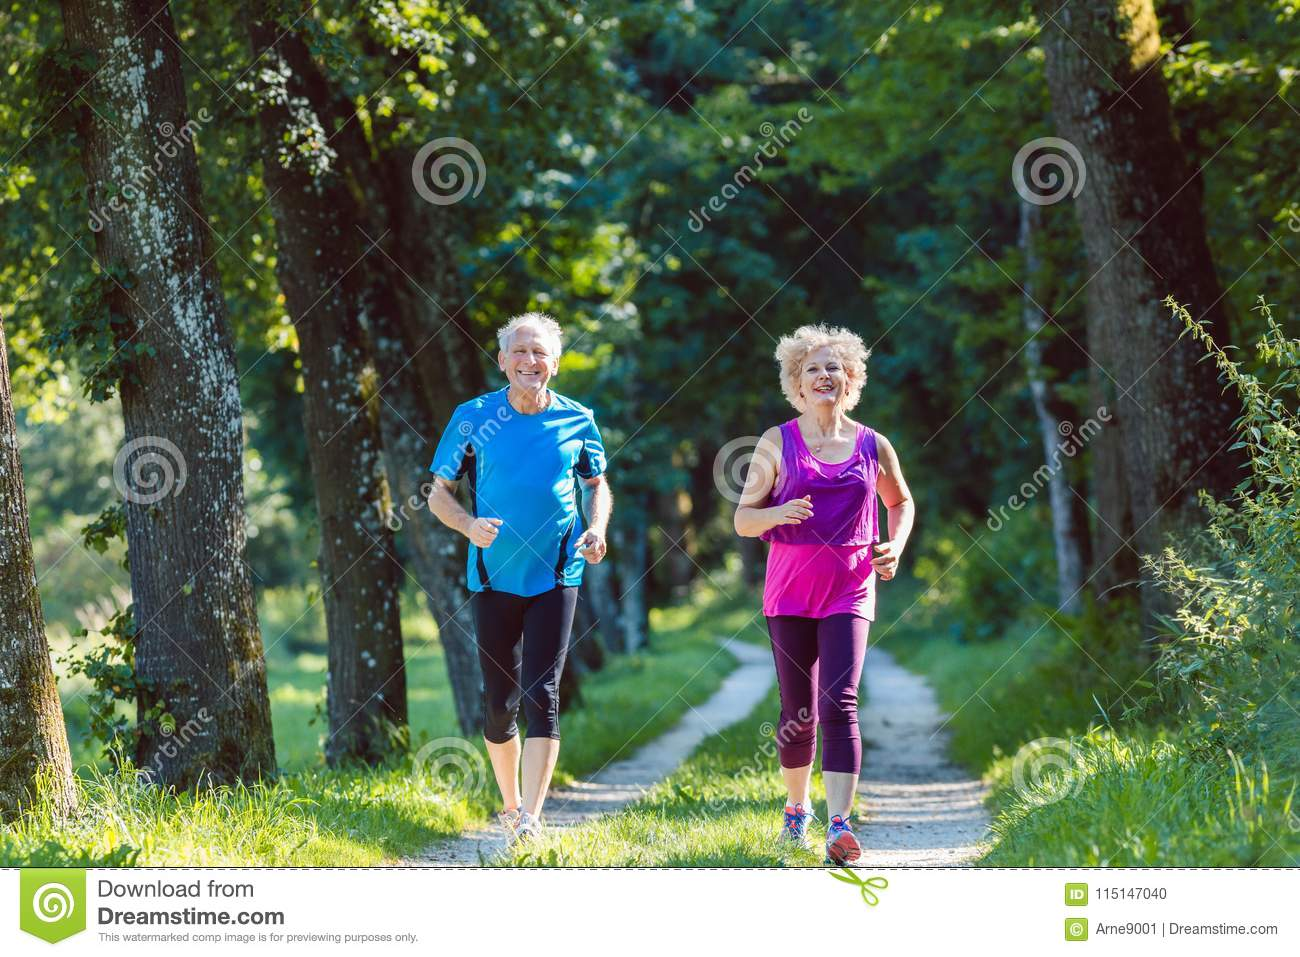 Two active seniors with a healthy lifestyle smiling while jogging